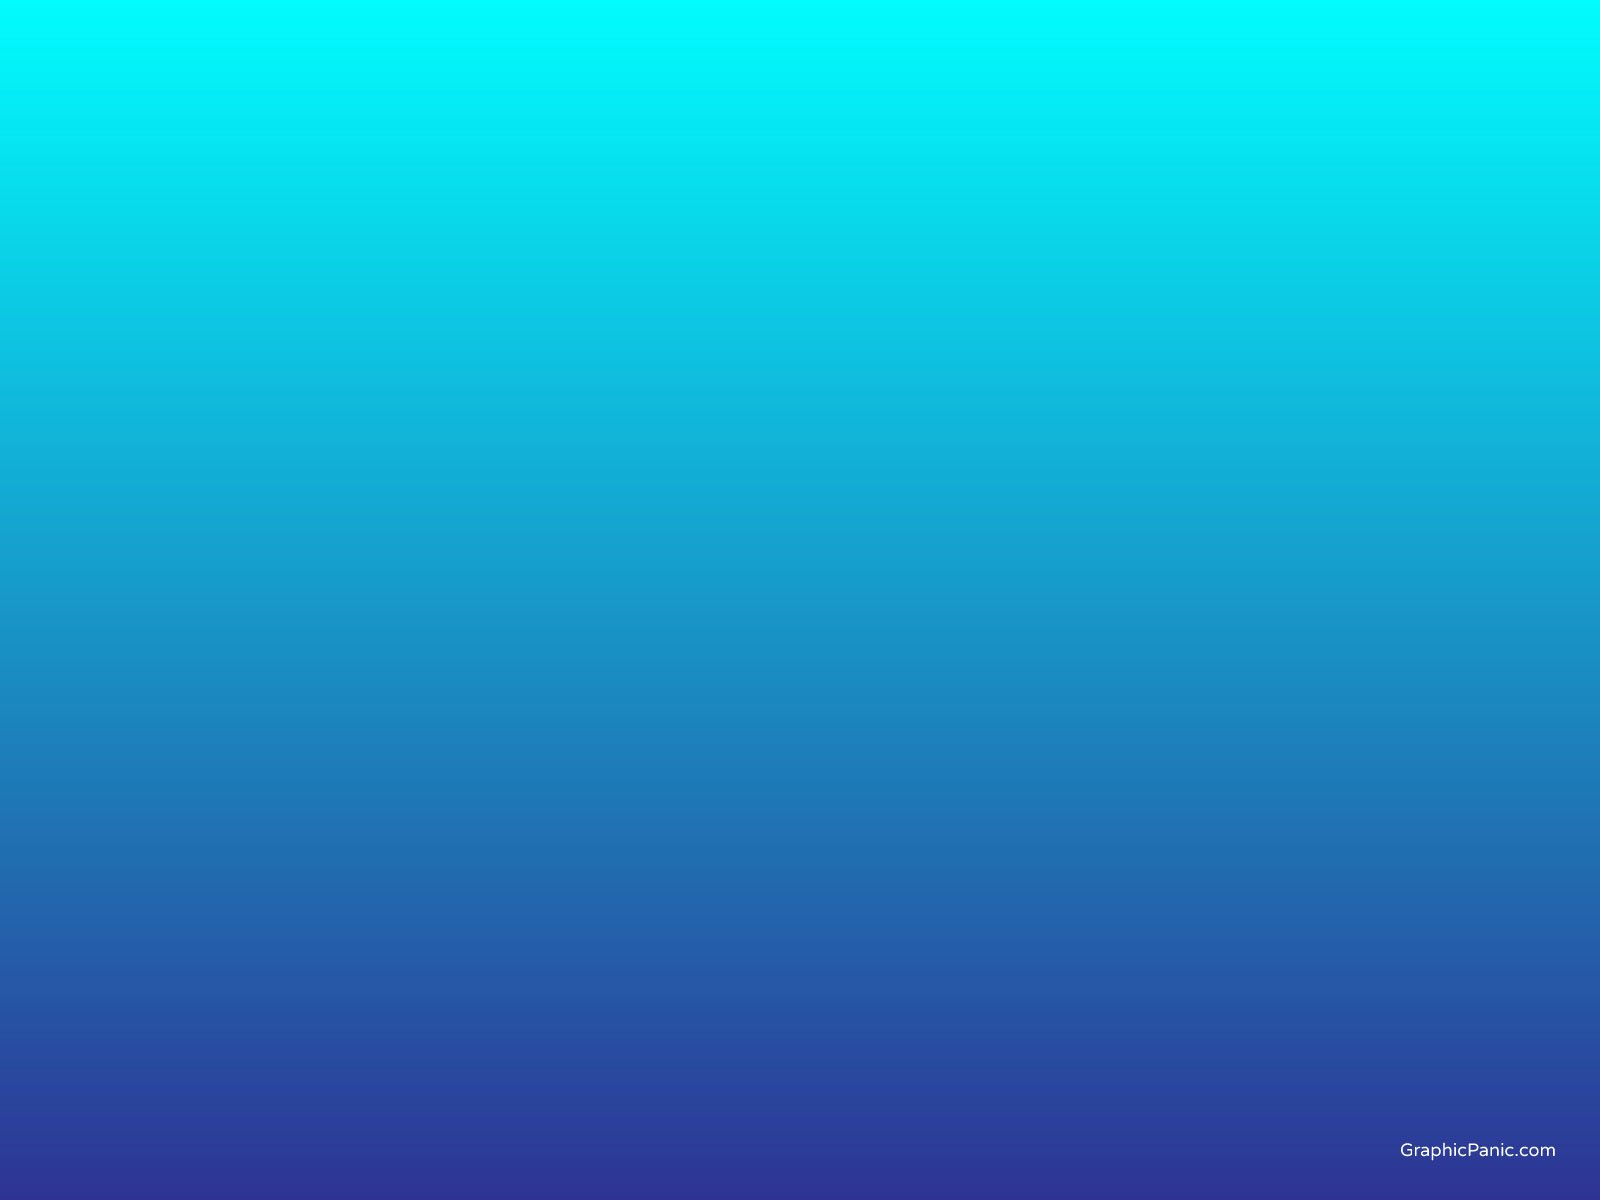 blue gradient background Image cute Wallpapers 1600x1200